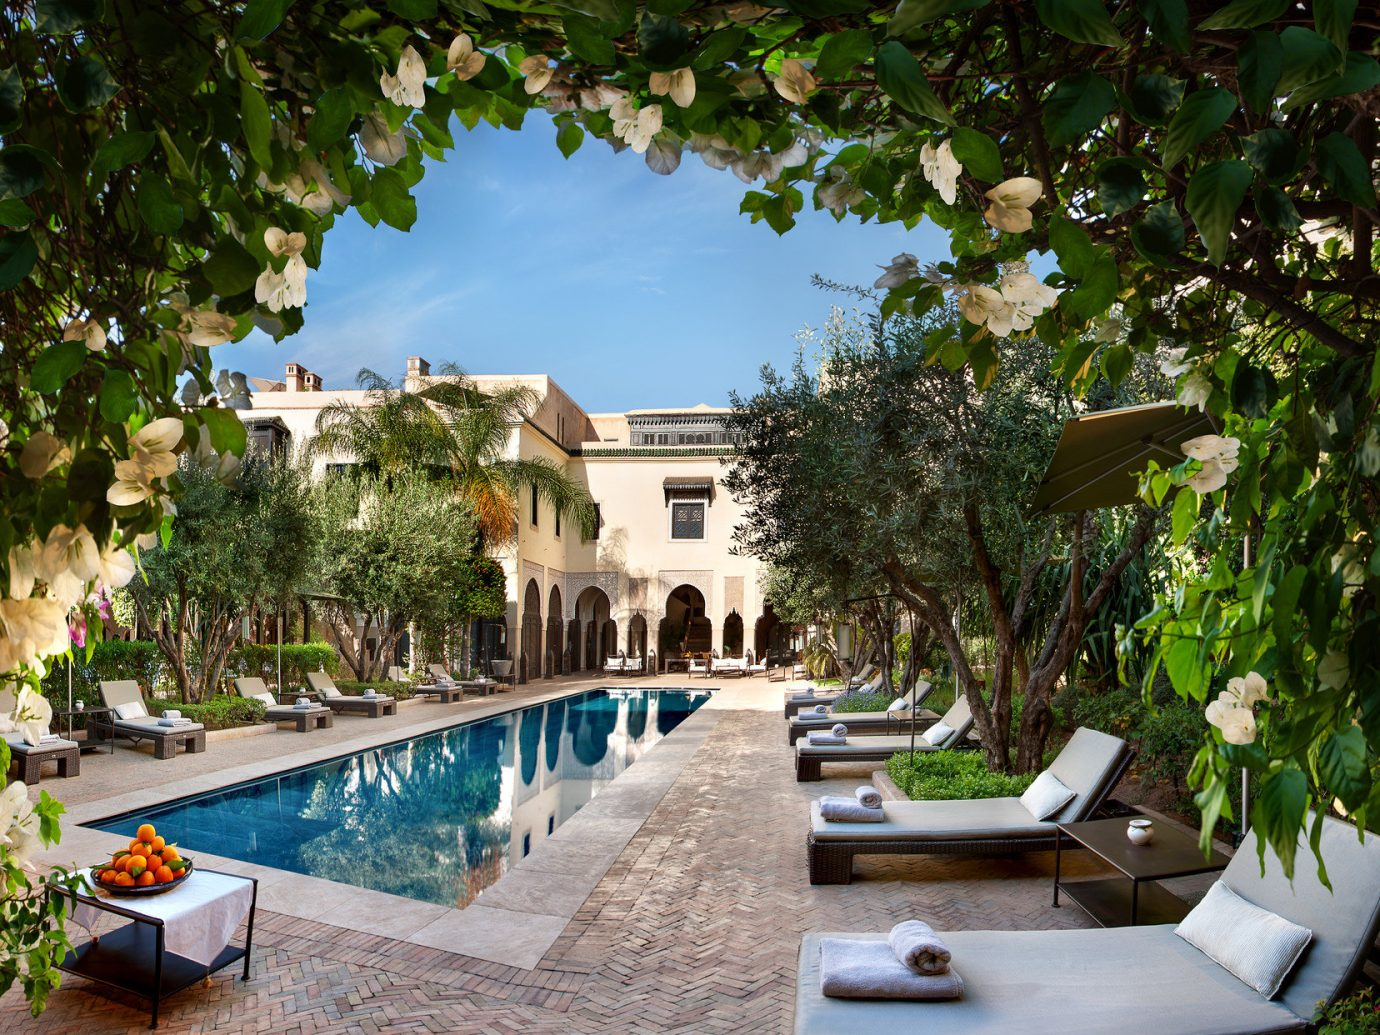 Hotels tree outdoor property estate swimming pool building Resort house plant vacation Villa backyard home mansion Courtyard Garden cottage furniture lined shade stone